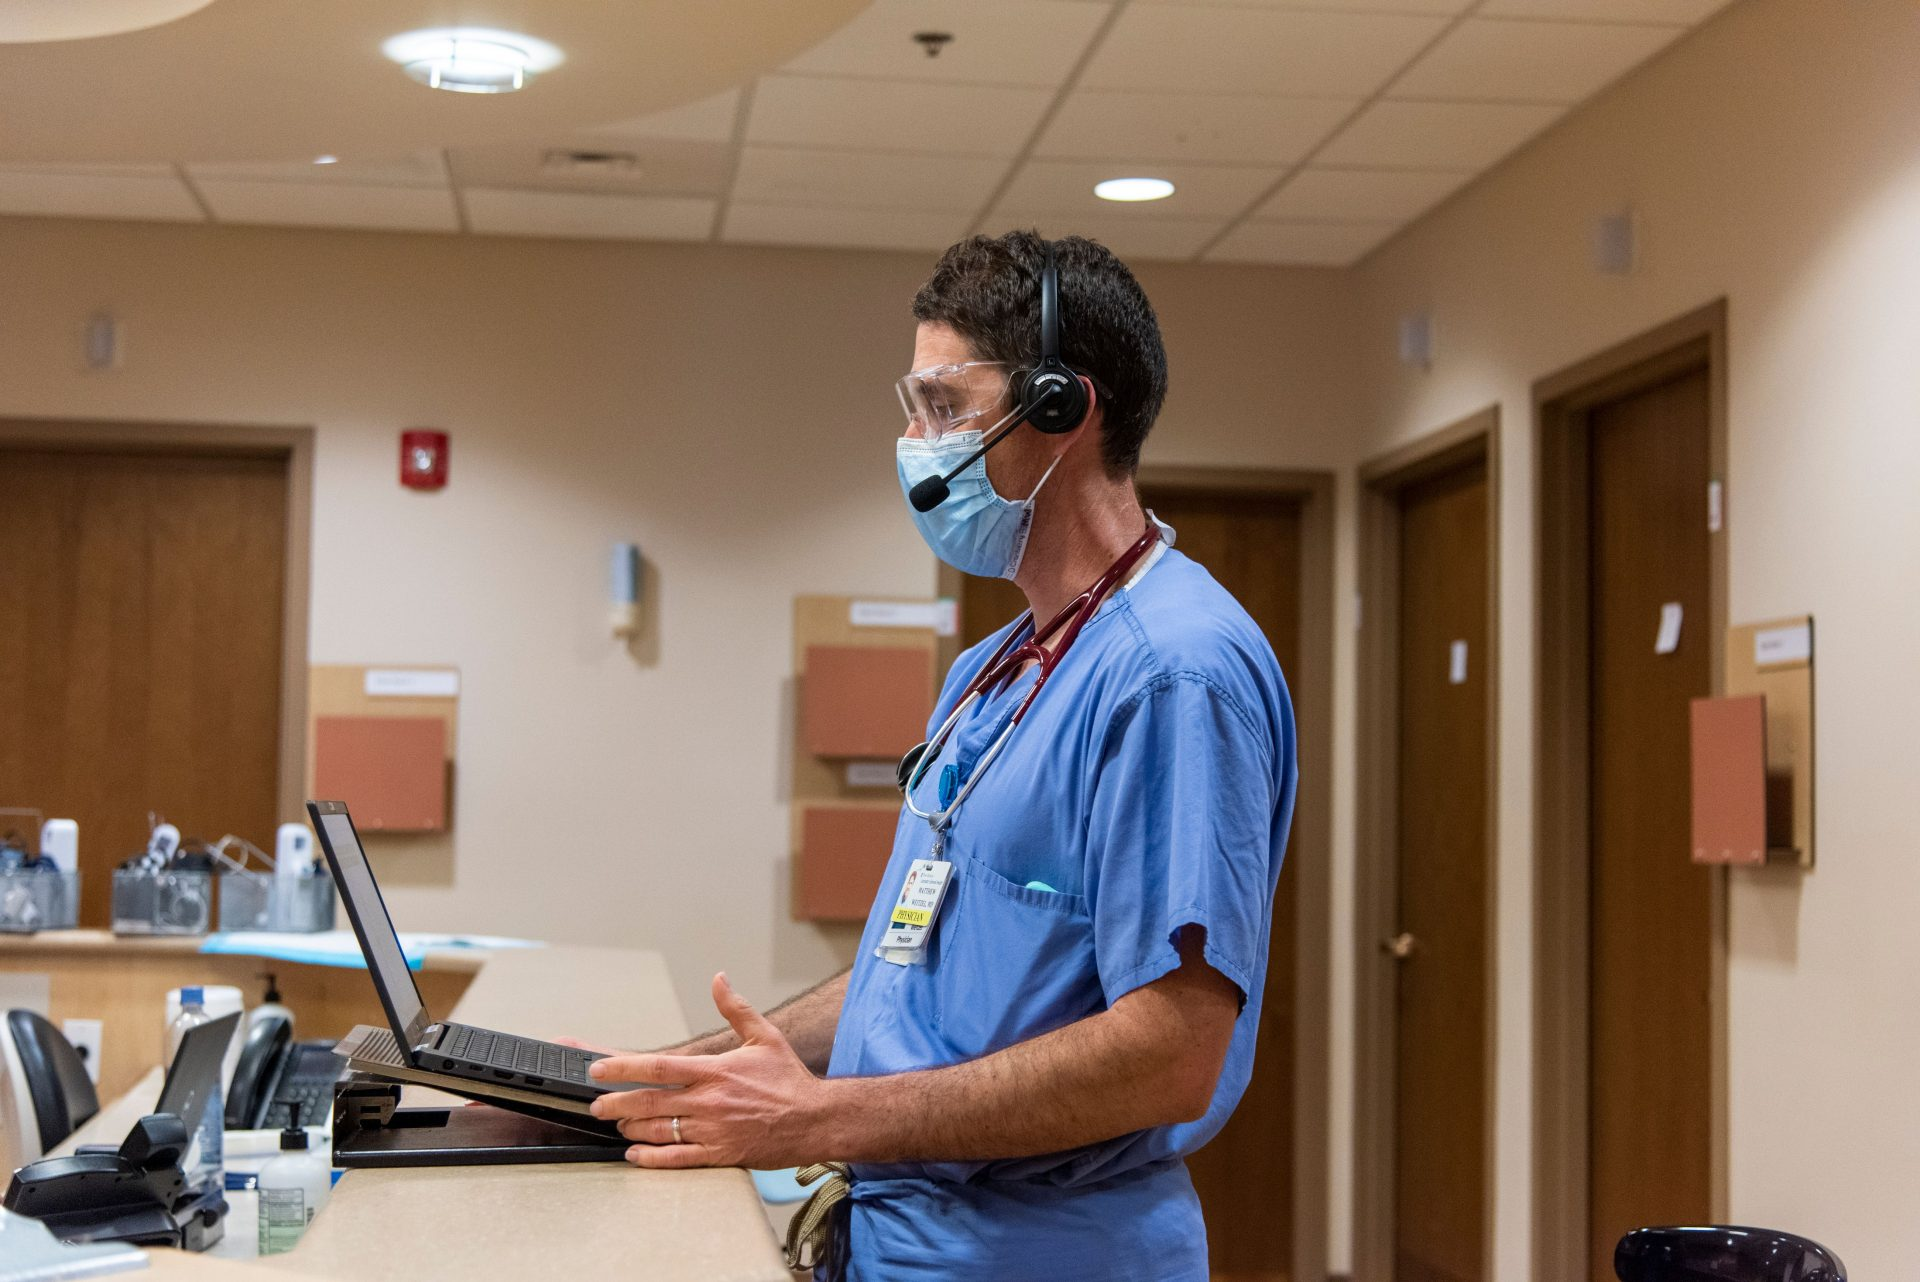 Lancaster Health Center stays in touch with patients through telemedicine